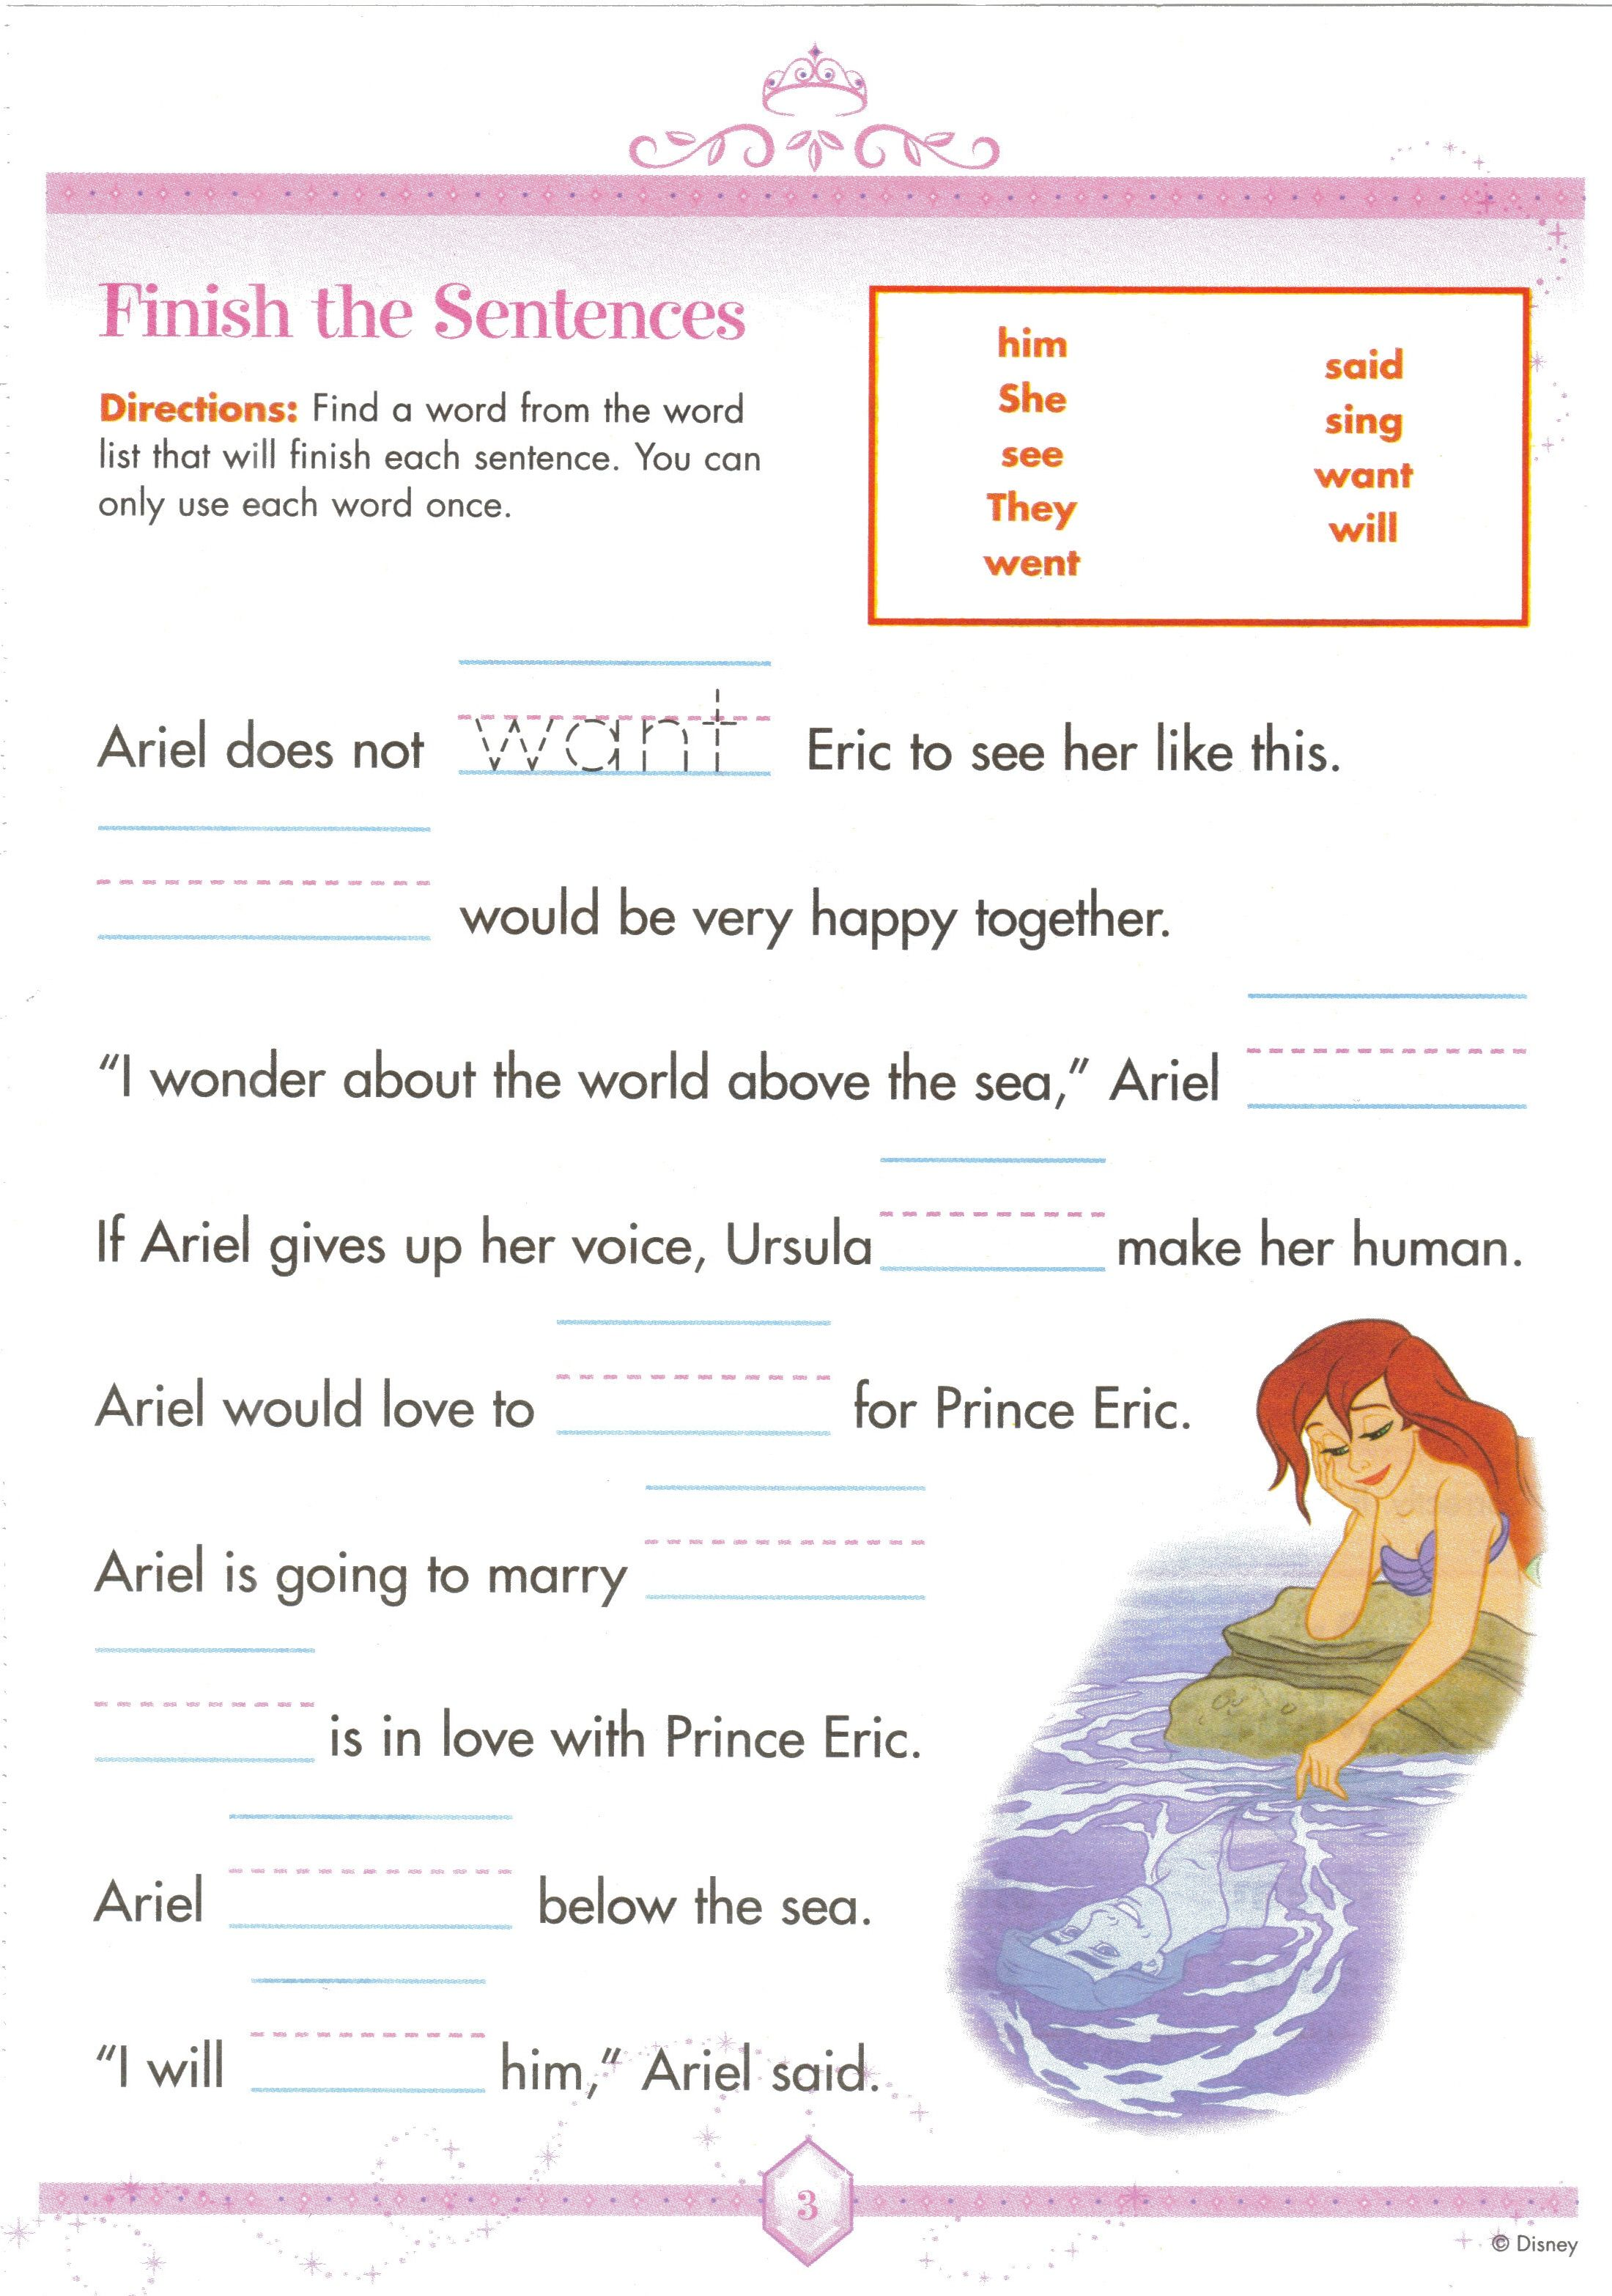 Weirdmailus  Splendid  Images About Worksheets On Pinterest  Fun Facts For Kids  With Marvelous  Images About Worksheets On Pinterest  Fun Facts For Kids Earth Day Worksheets And Jungles With Adorable Worksheet Nouns Also Kindergarten Apple Worksheets In Addition Simple Spelling Worksheets And English Worksheets For Primary  As Well As Free Printable Subtraction Worksheets For Nd Grade Additionally Easy Maths Worksheets From Pinterestcom With Weirdmailus  Marvelous  Images About Worksheets On Pinterest  Fun Facts For Kids  With Adorable  Images About Worksheets On Pinterest  Fun Facts For Kids Earth Day Worksheets And Jungles And Splendid Worksheet Nouns Also Kindergarten Apple Worksheets In Addition Simple Spelling Worksheets From Pinterestcom